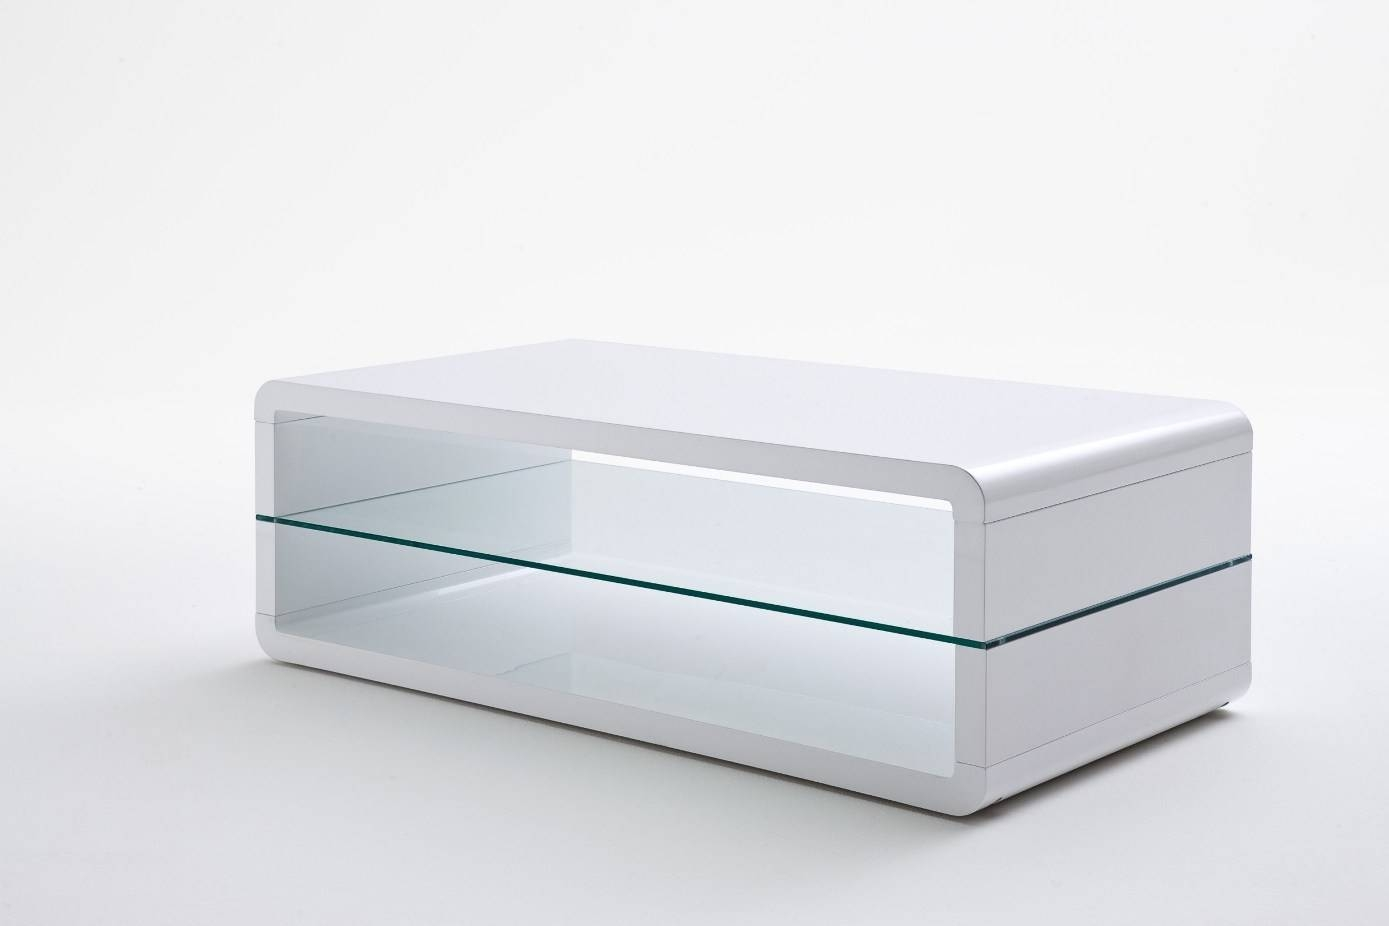 Gloss White Coffee Table Intended For Your House | Onsaleproduct Throughout Coffee Tables White High Gloss (View 9 of 30)